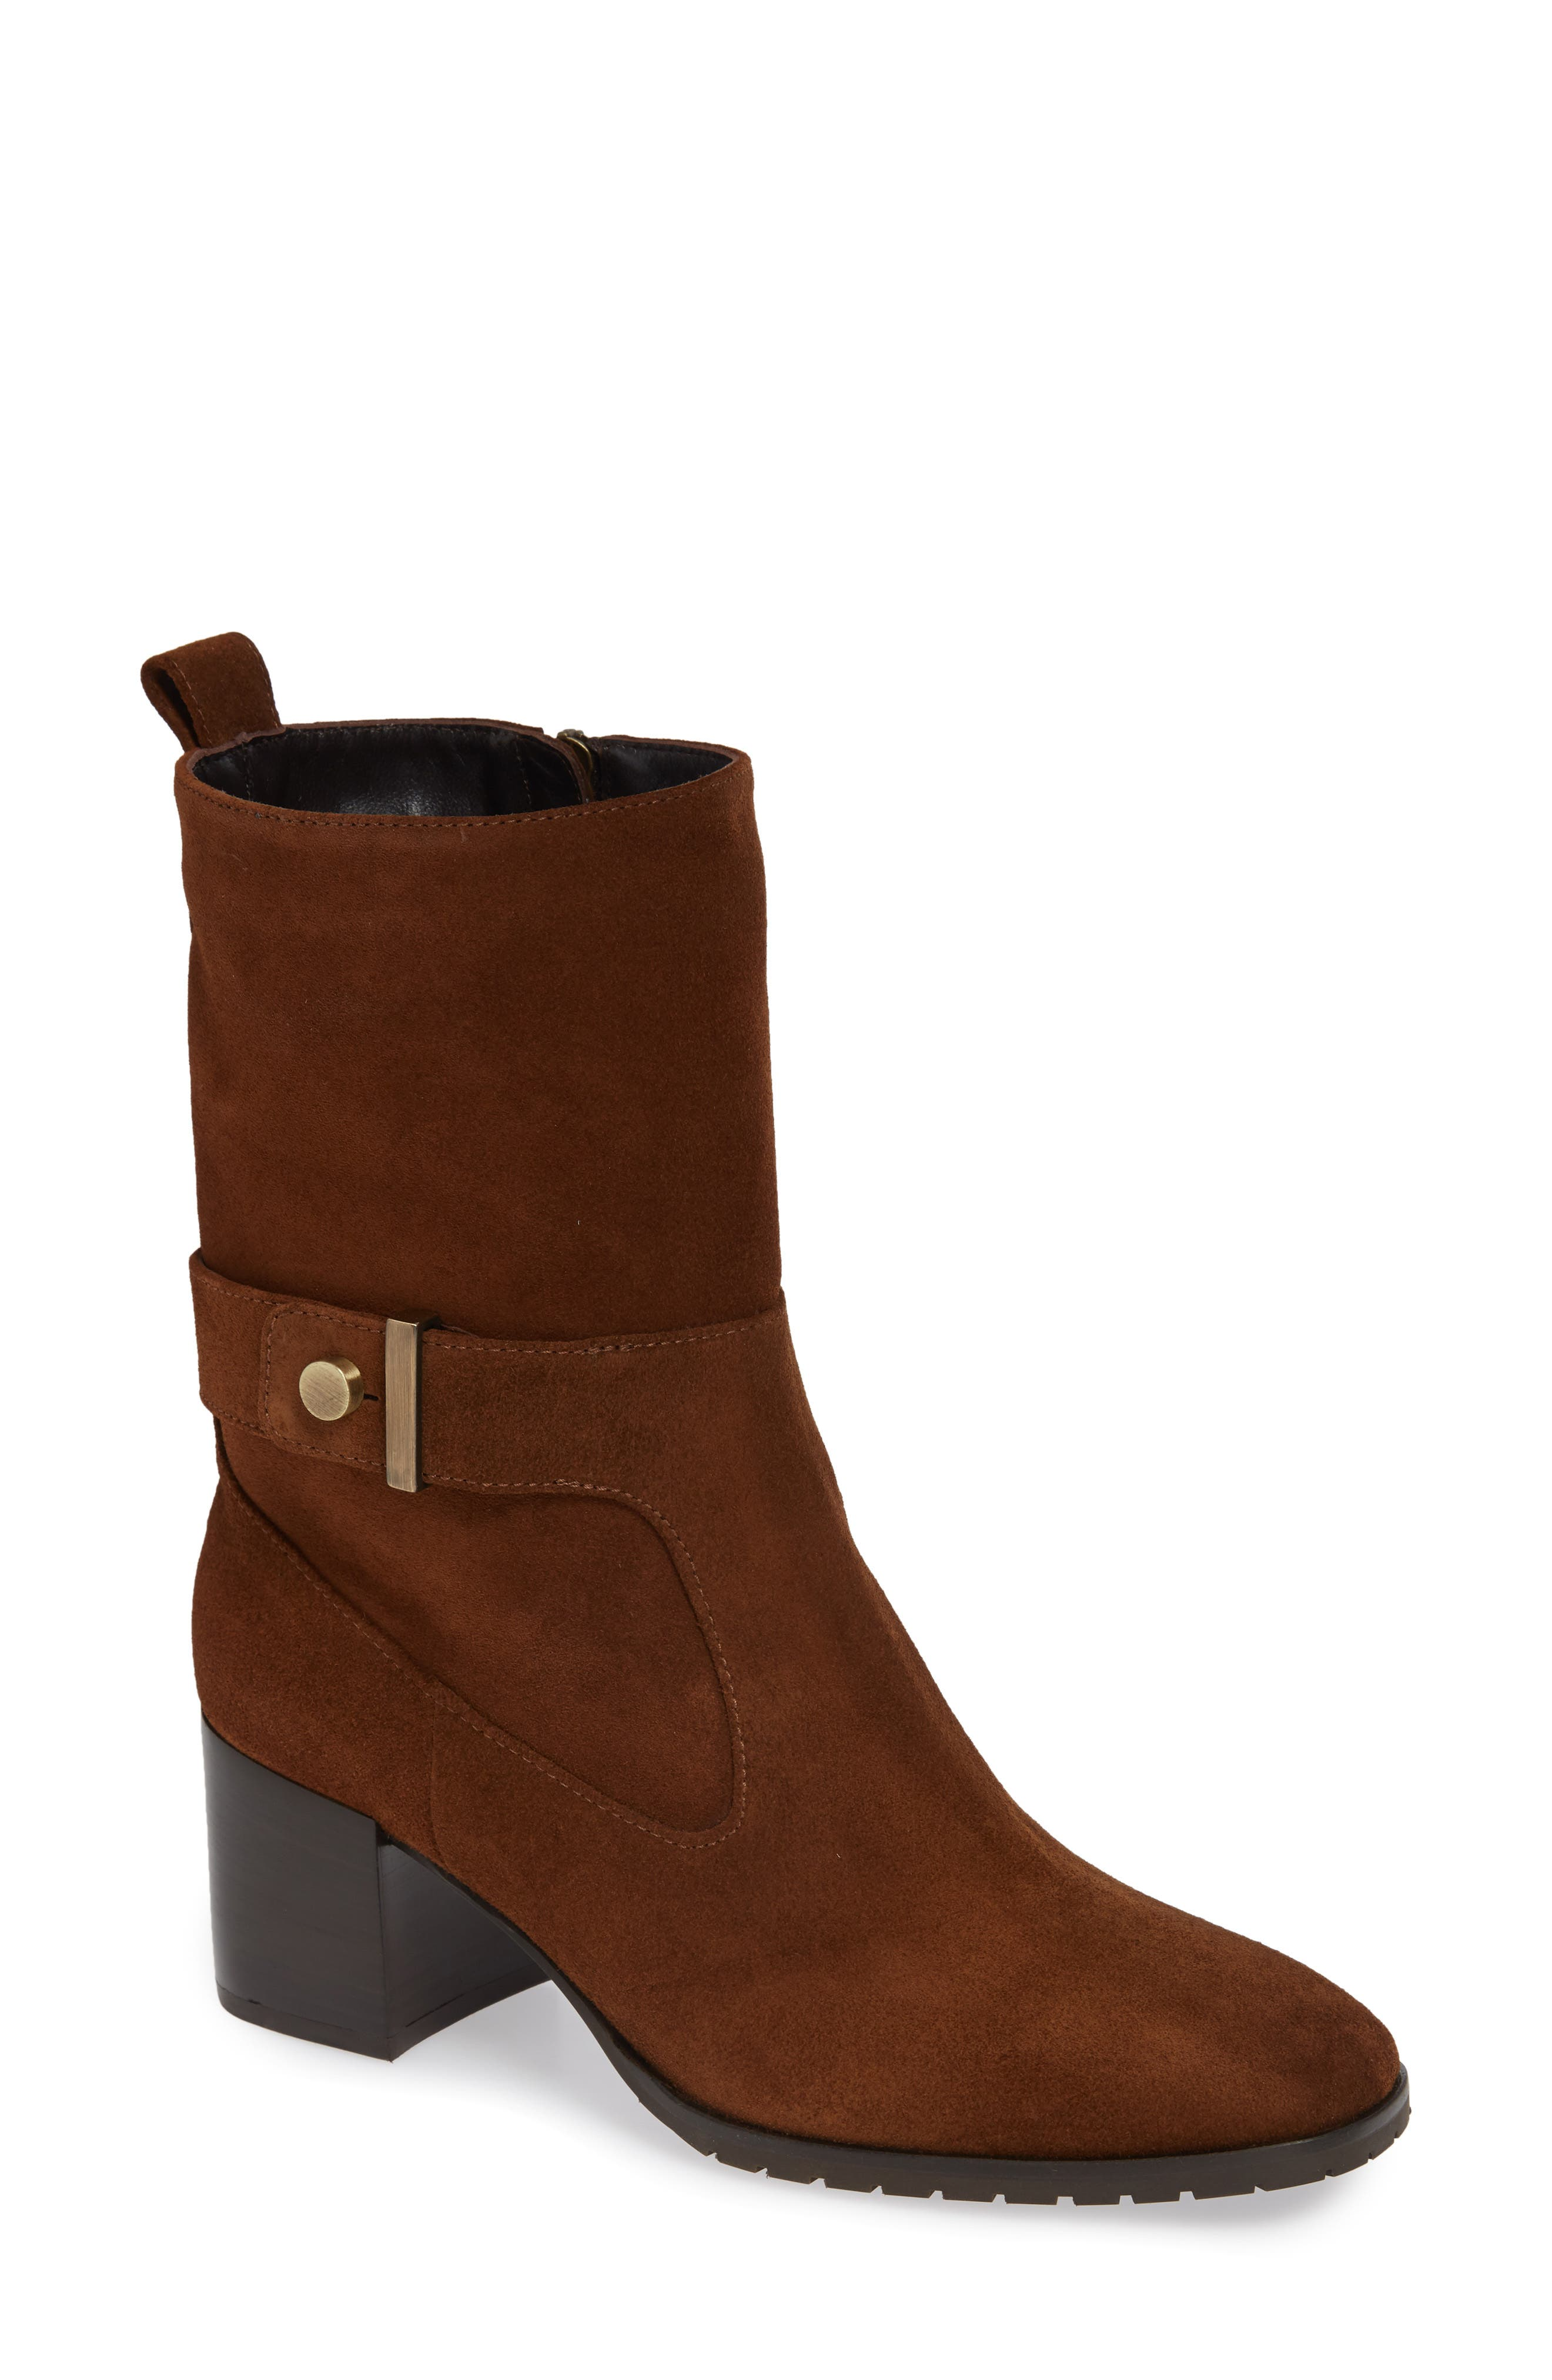 Aquatalia COLLETTE WEATHERPROOF BOOT